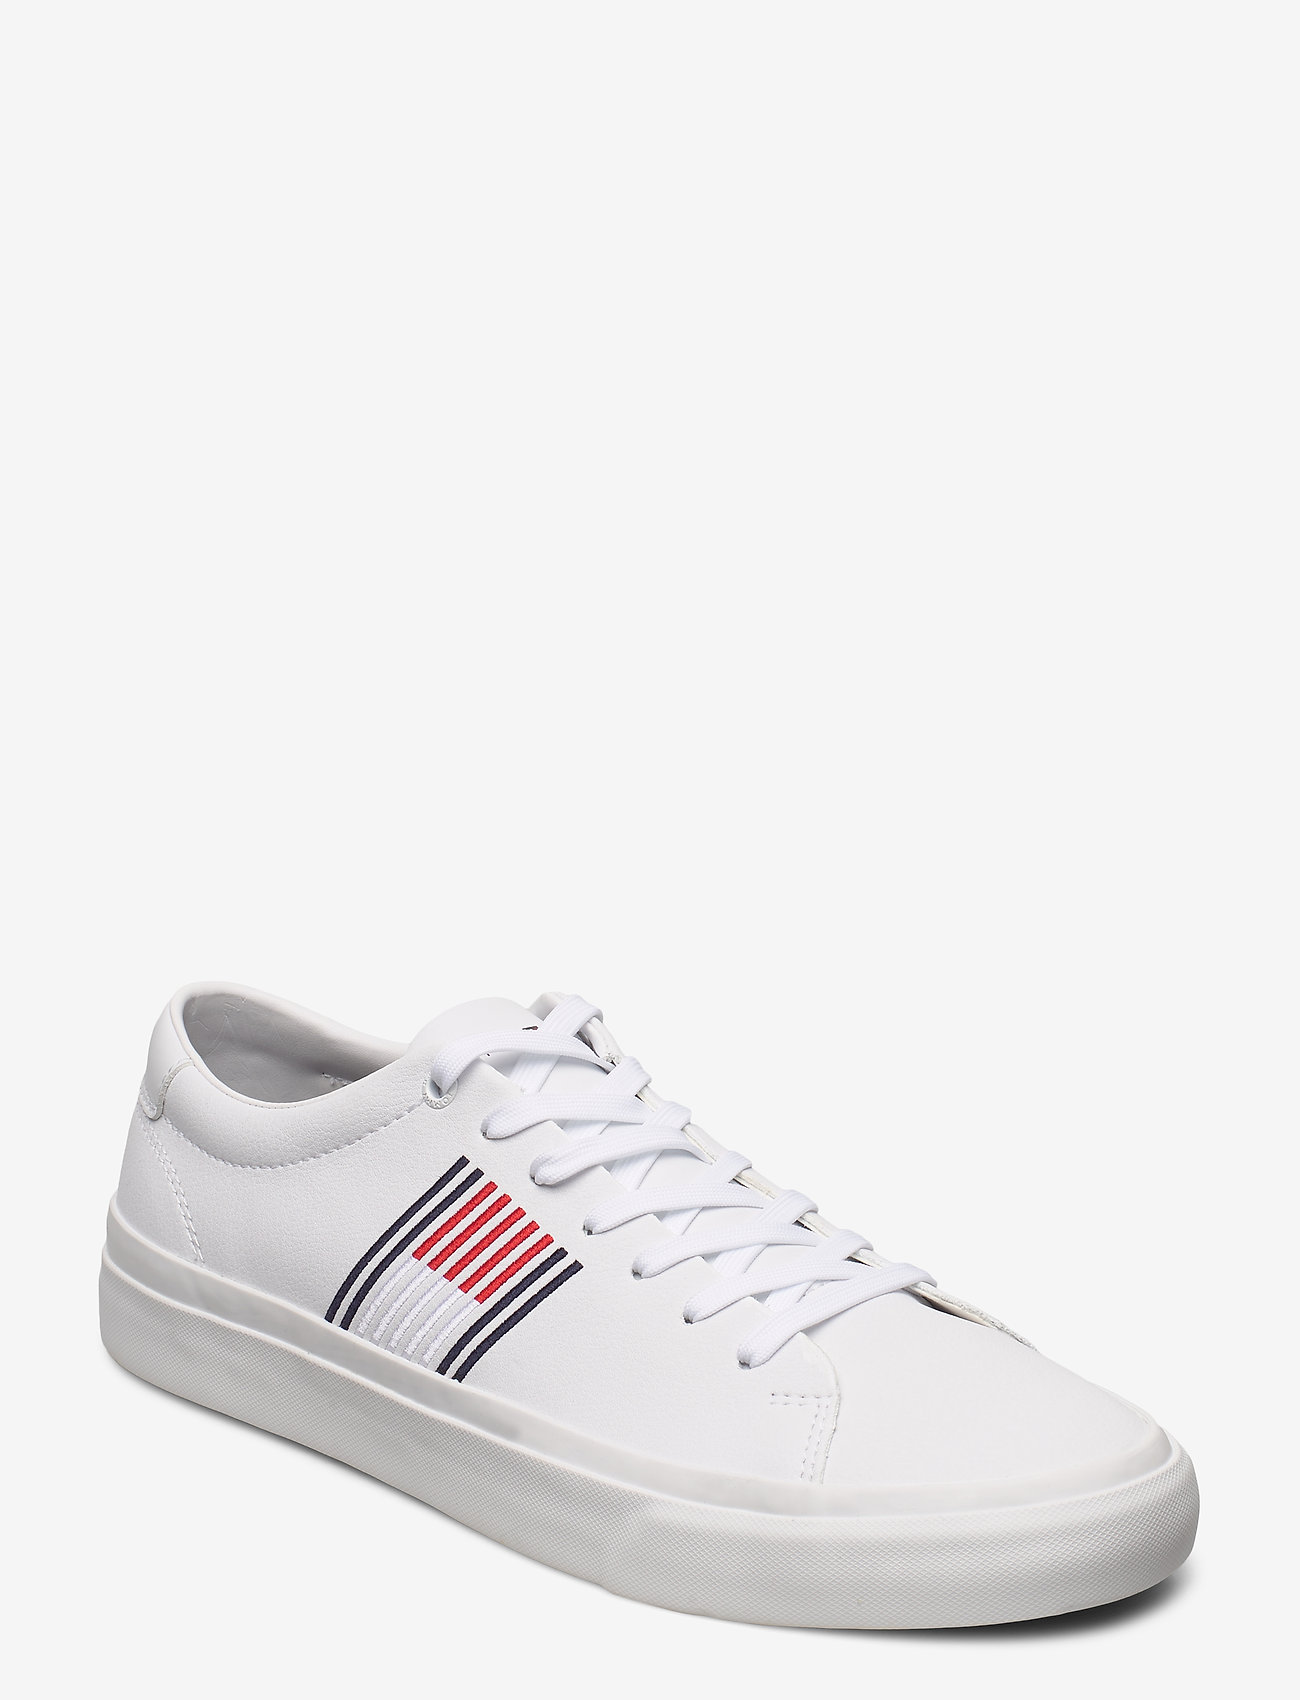 Tommy Hilfiger - CORPORATE LEATHER SNEAKER - low tops - white - 0